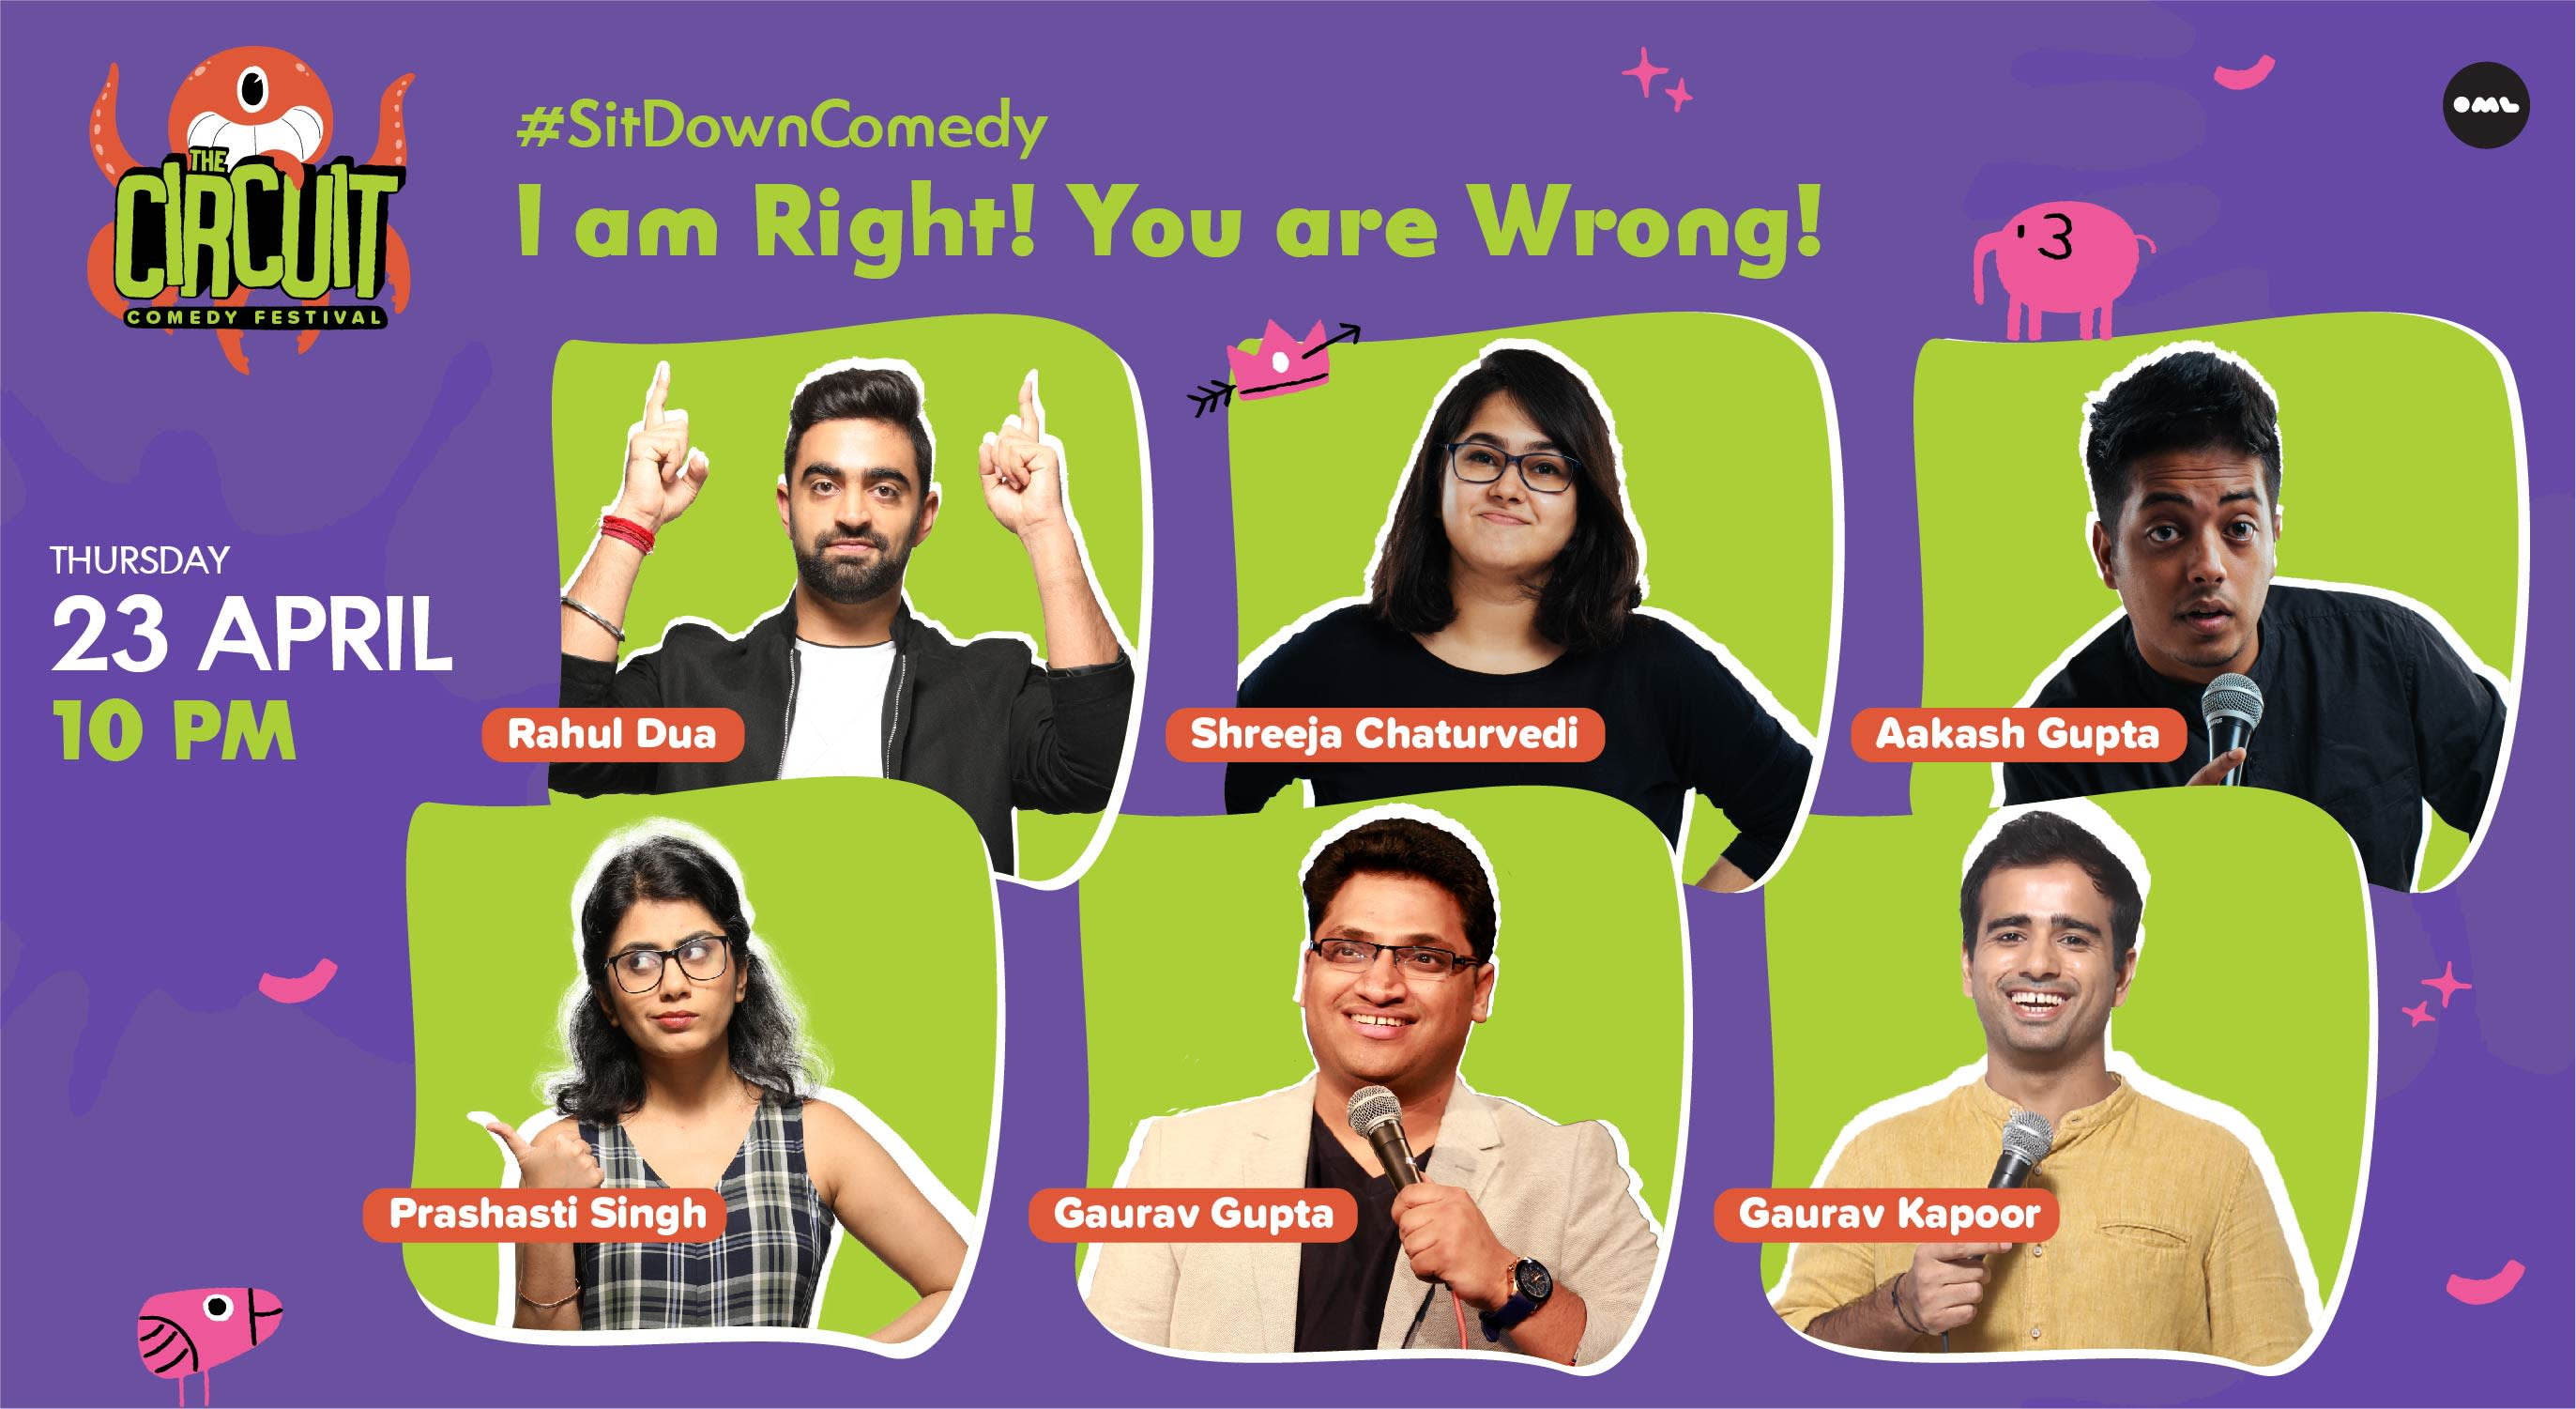 I am Right! You are Wrong! ft. Rahul Dua, Aakash Gupta & More